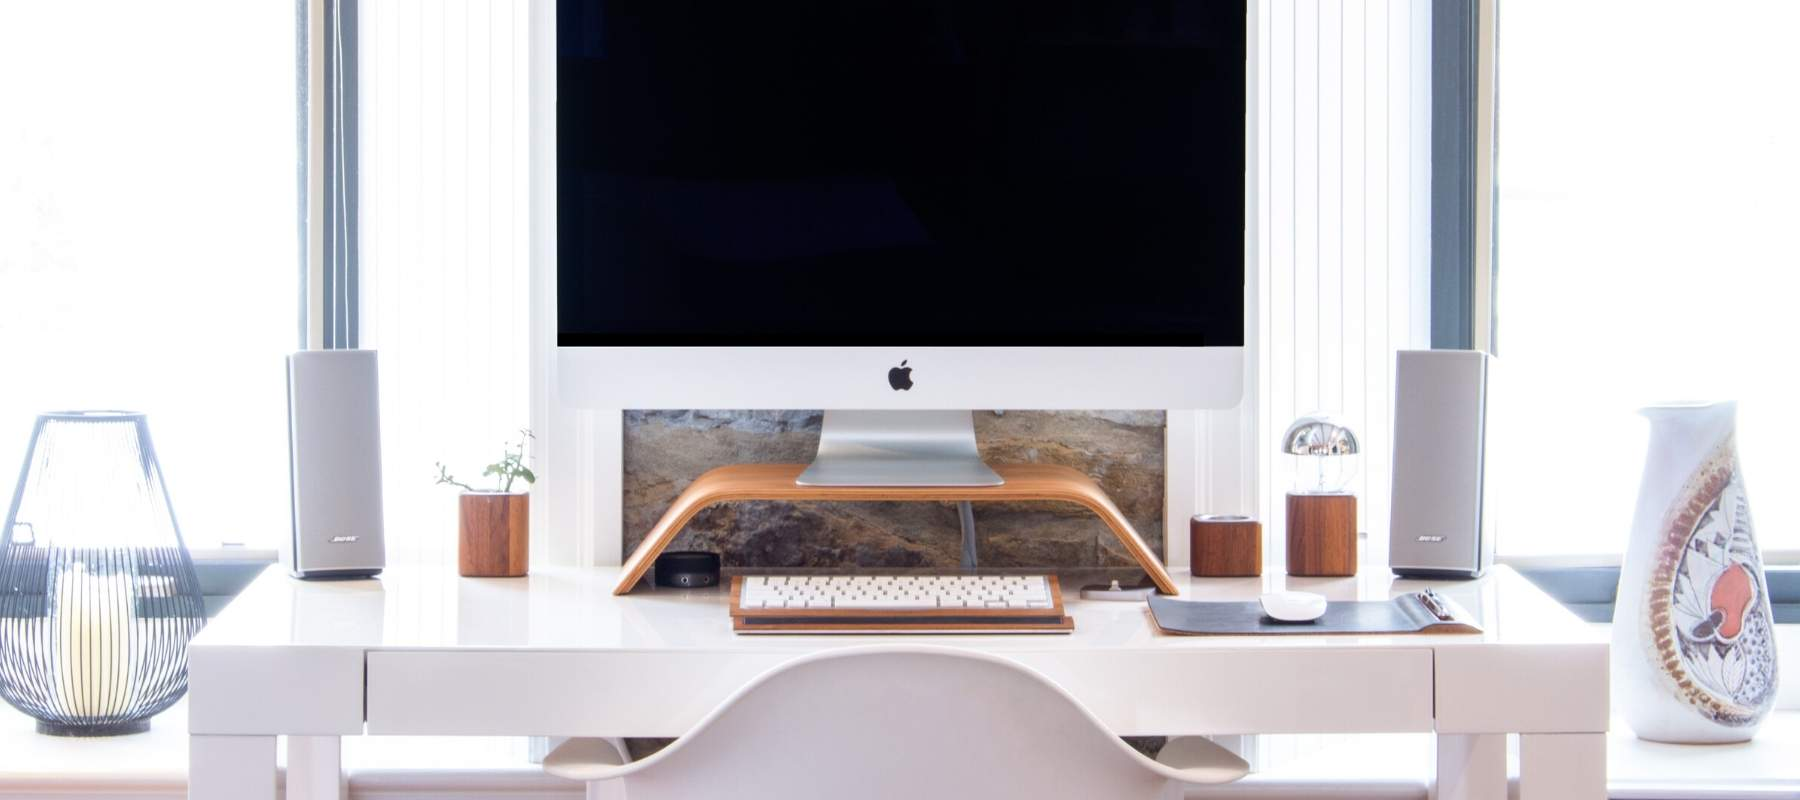 Mac on white desk in front of window